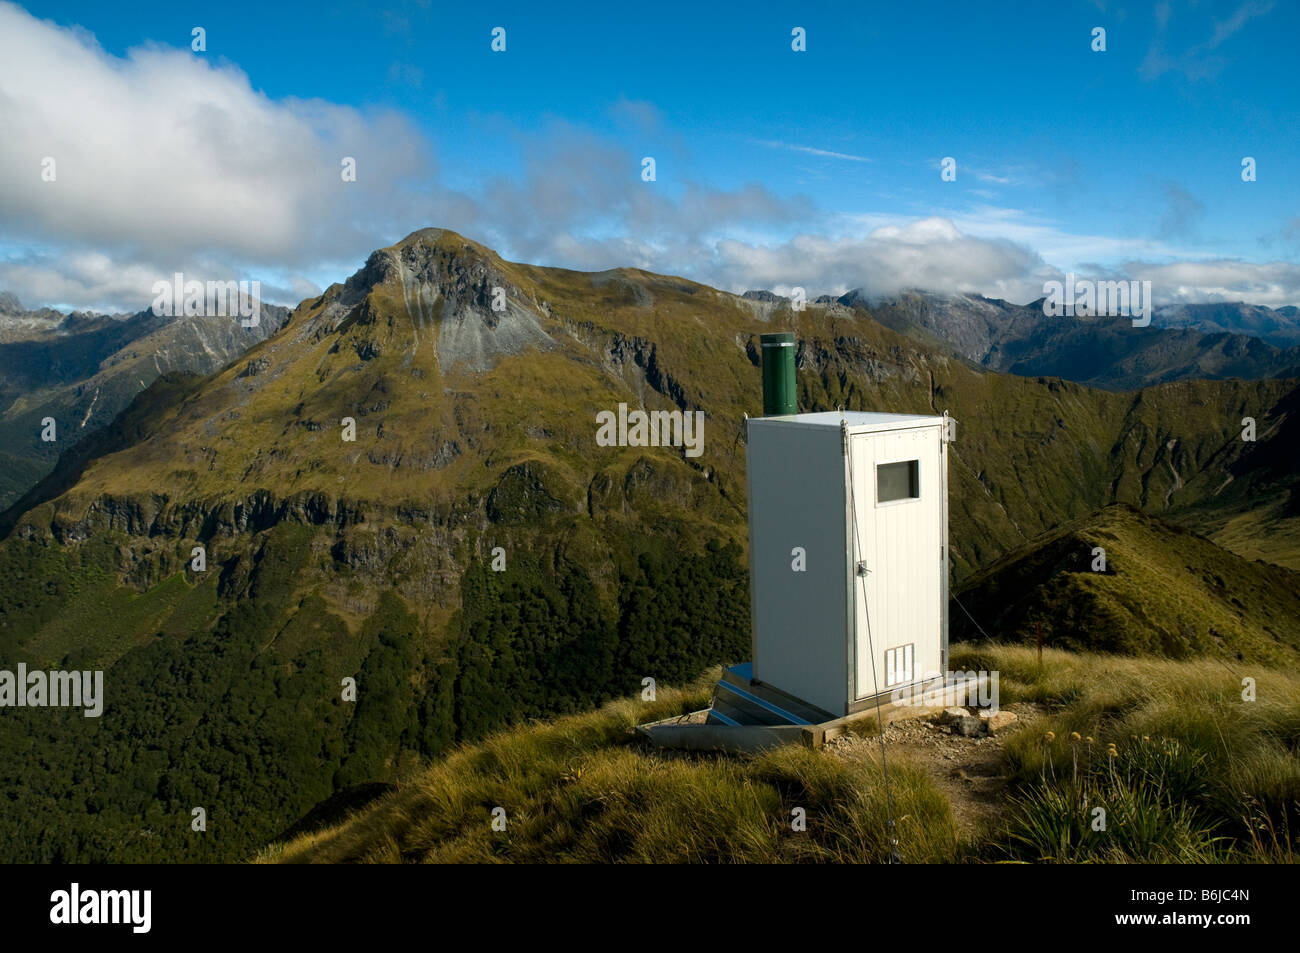 toilet-cabin-at-the-hanging-valley-emerg